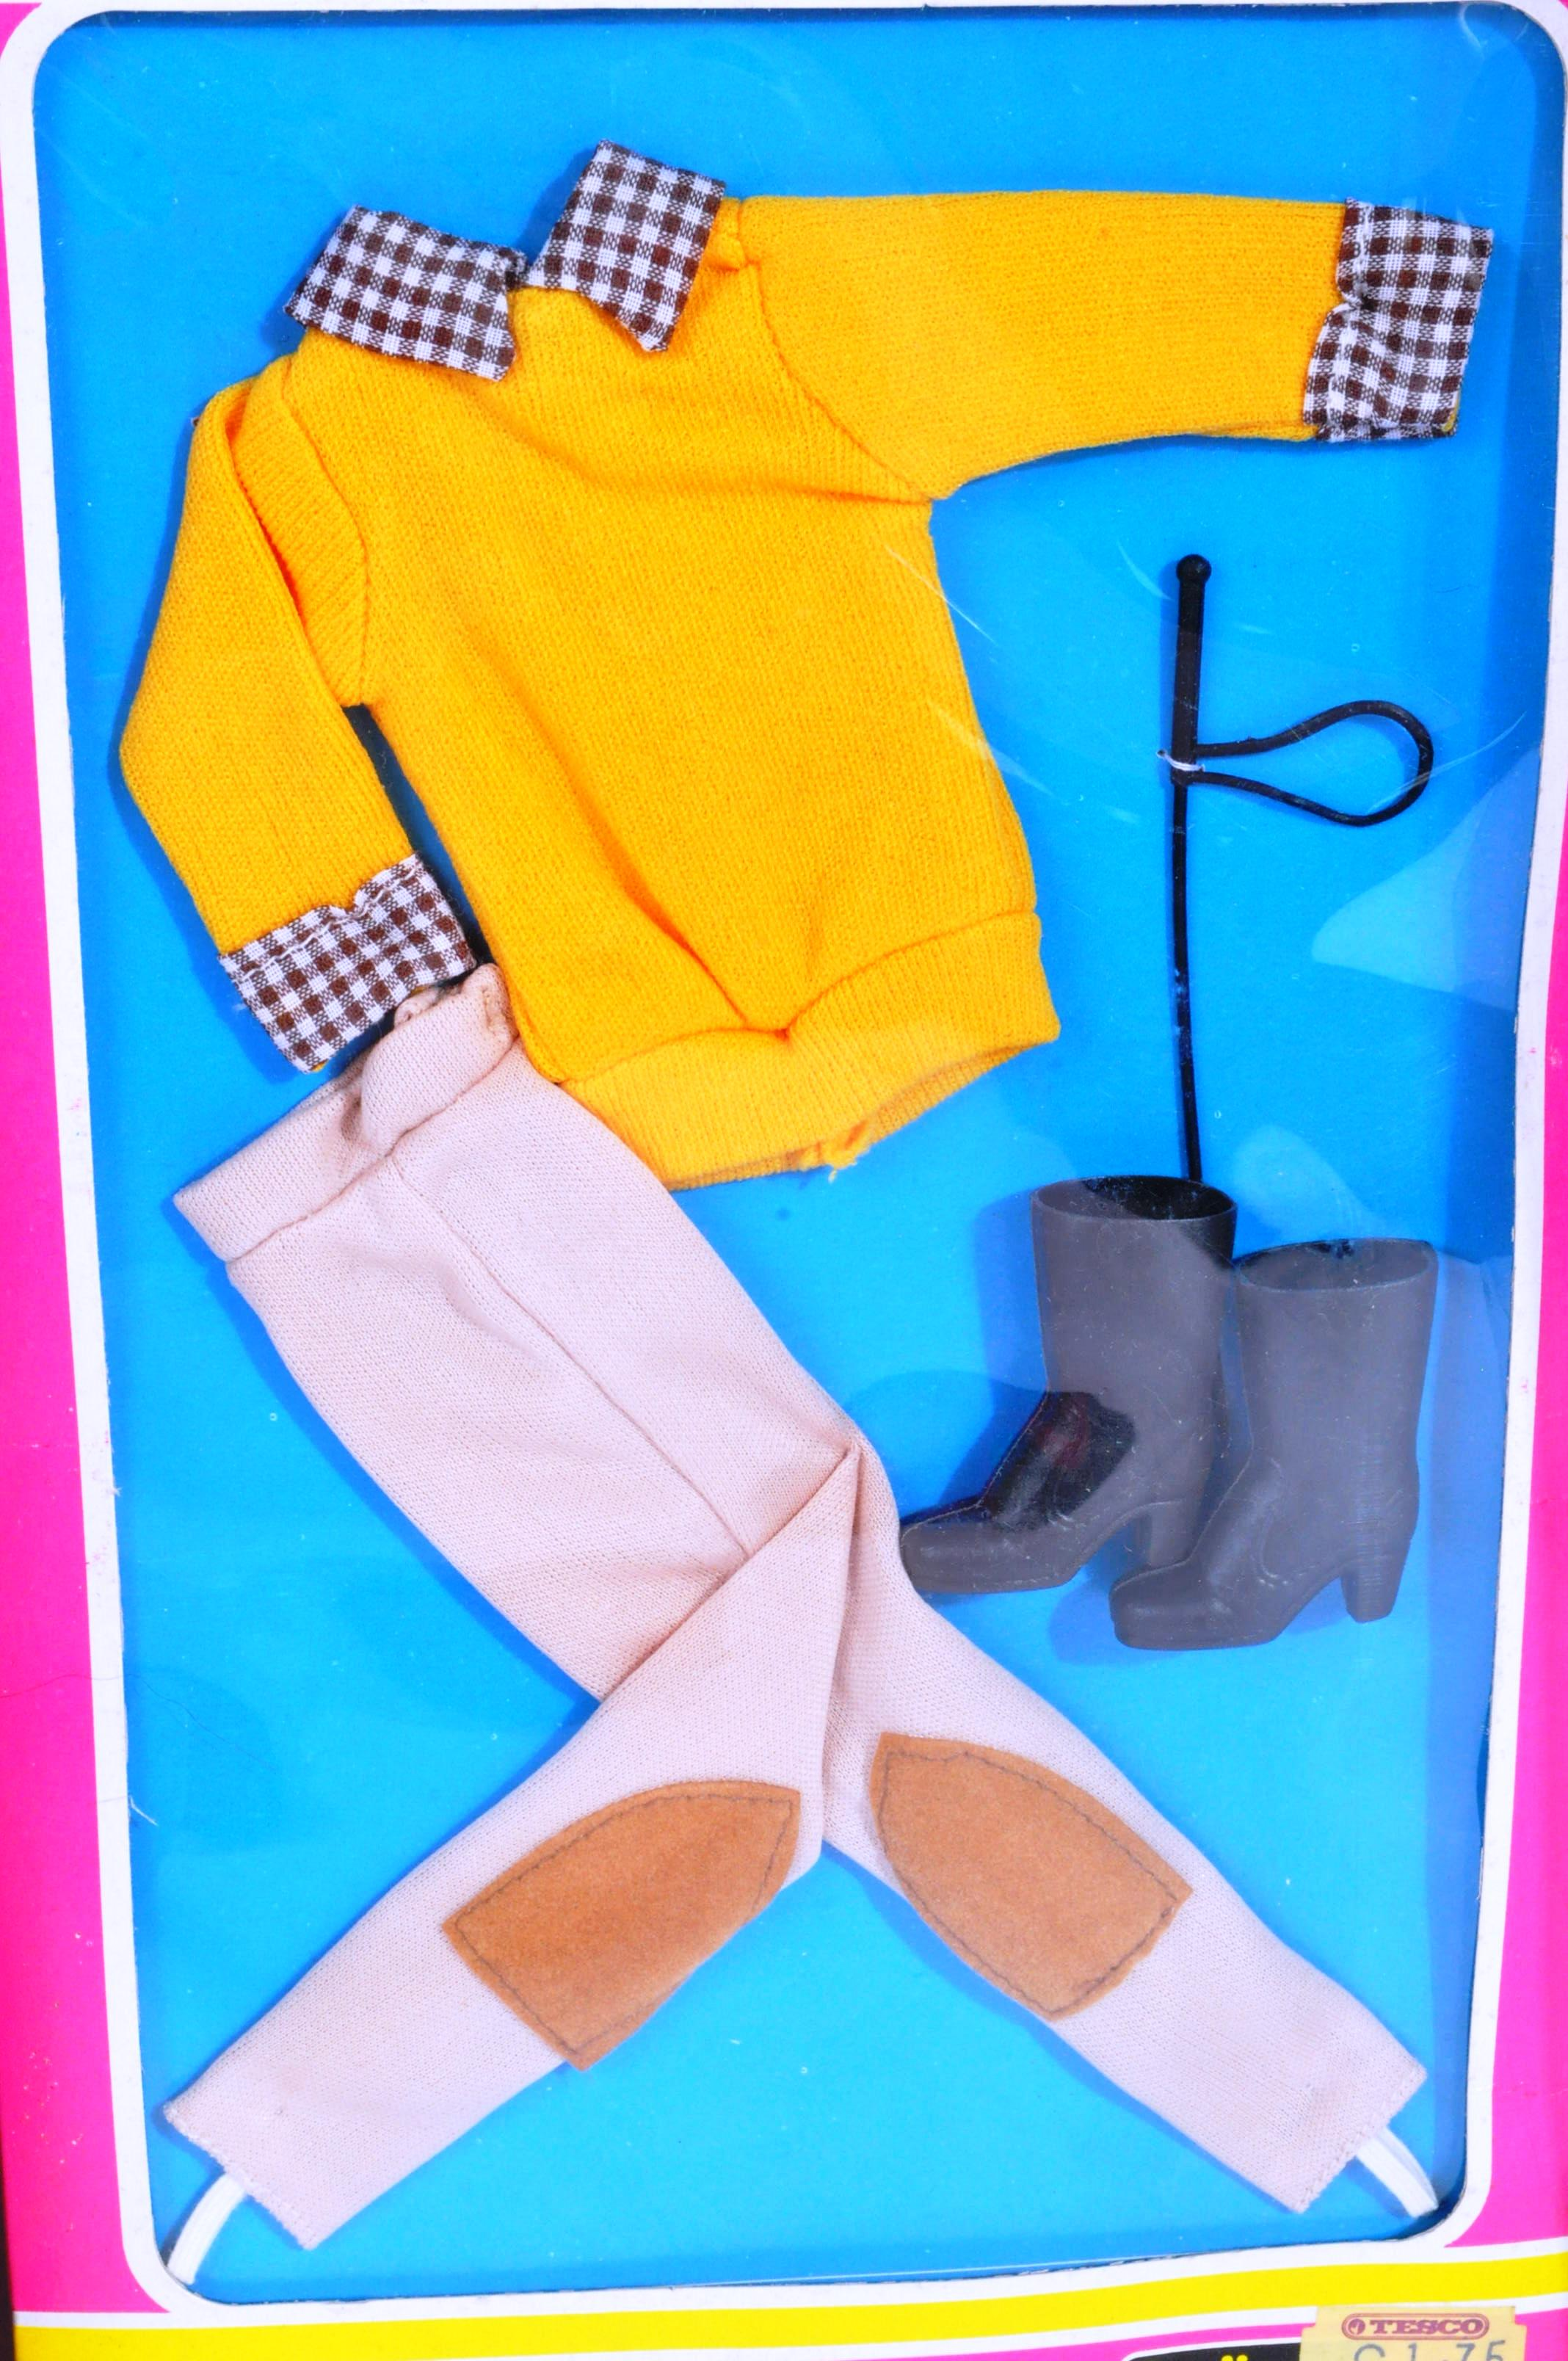 SINDY - COLLECTION OF ORIGINAL 1970S DOLLS & ACCESSORIES - Image 4 of 5